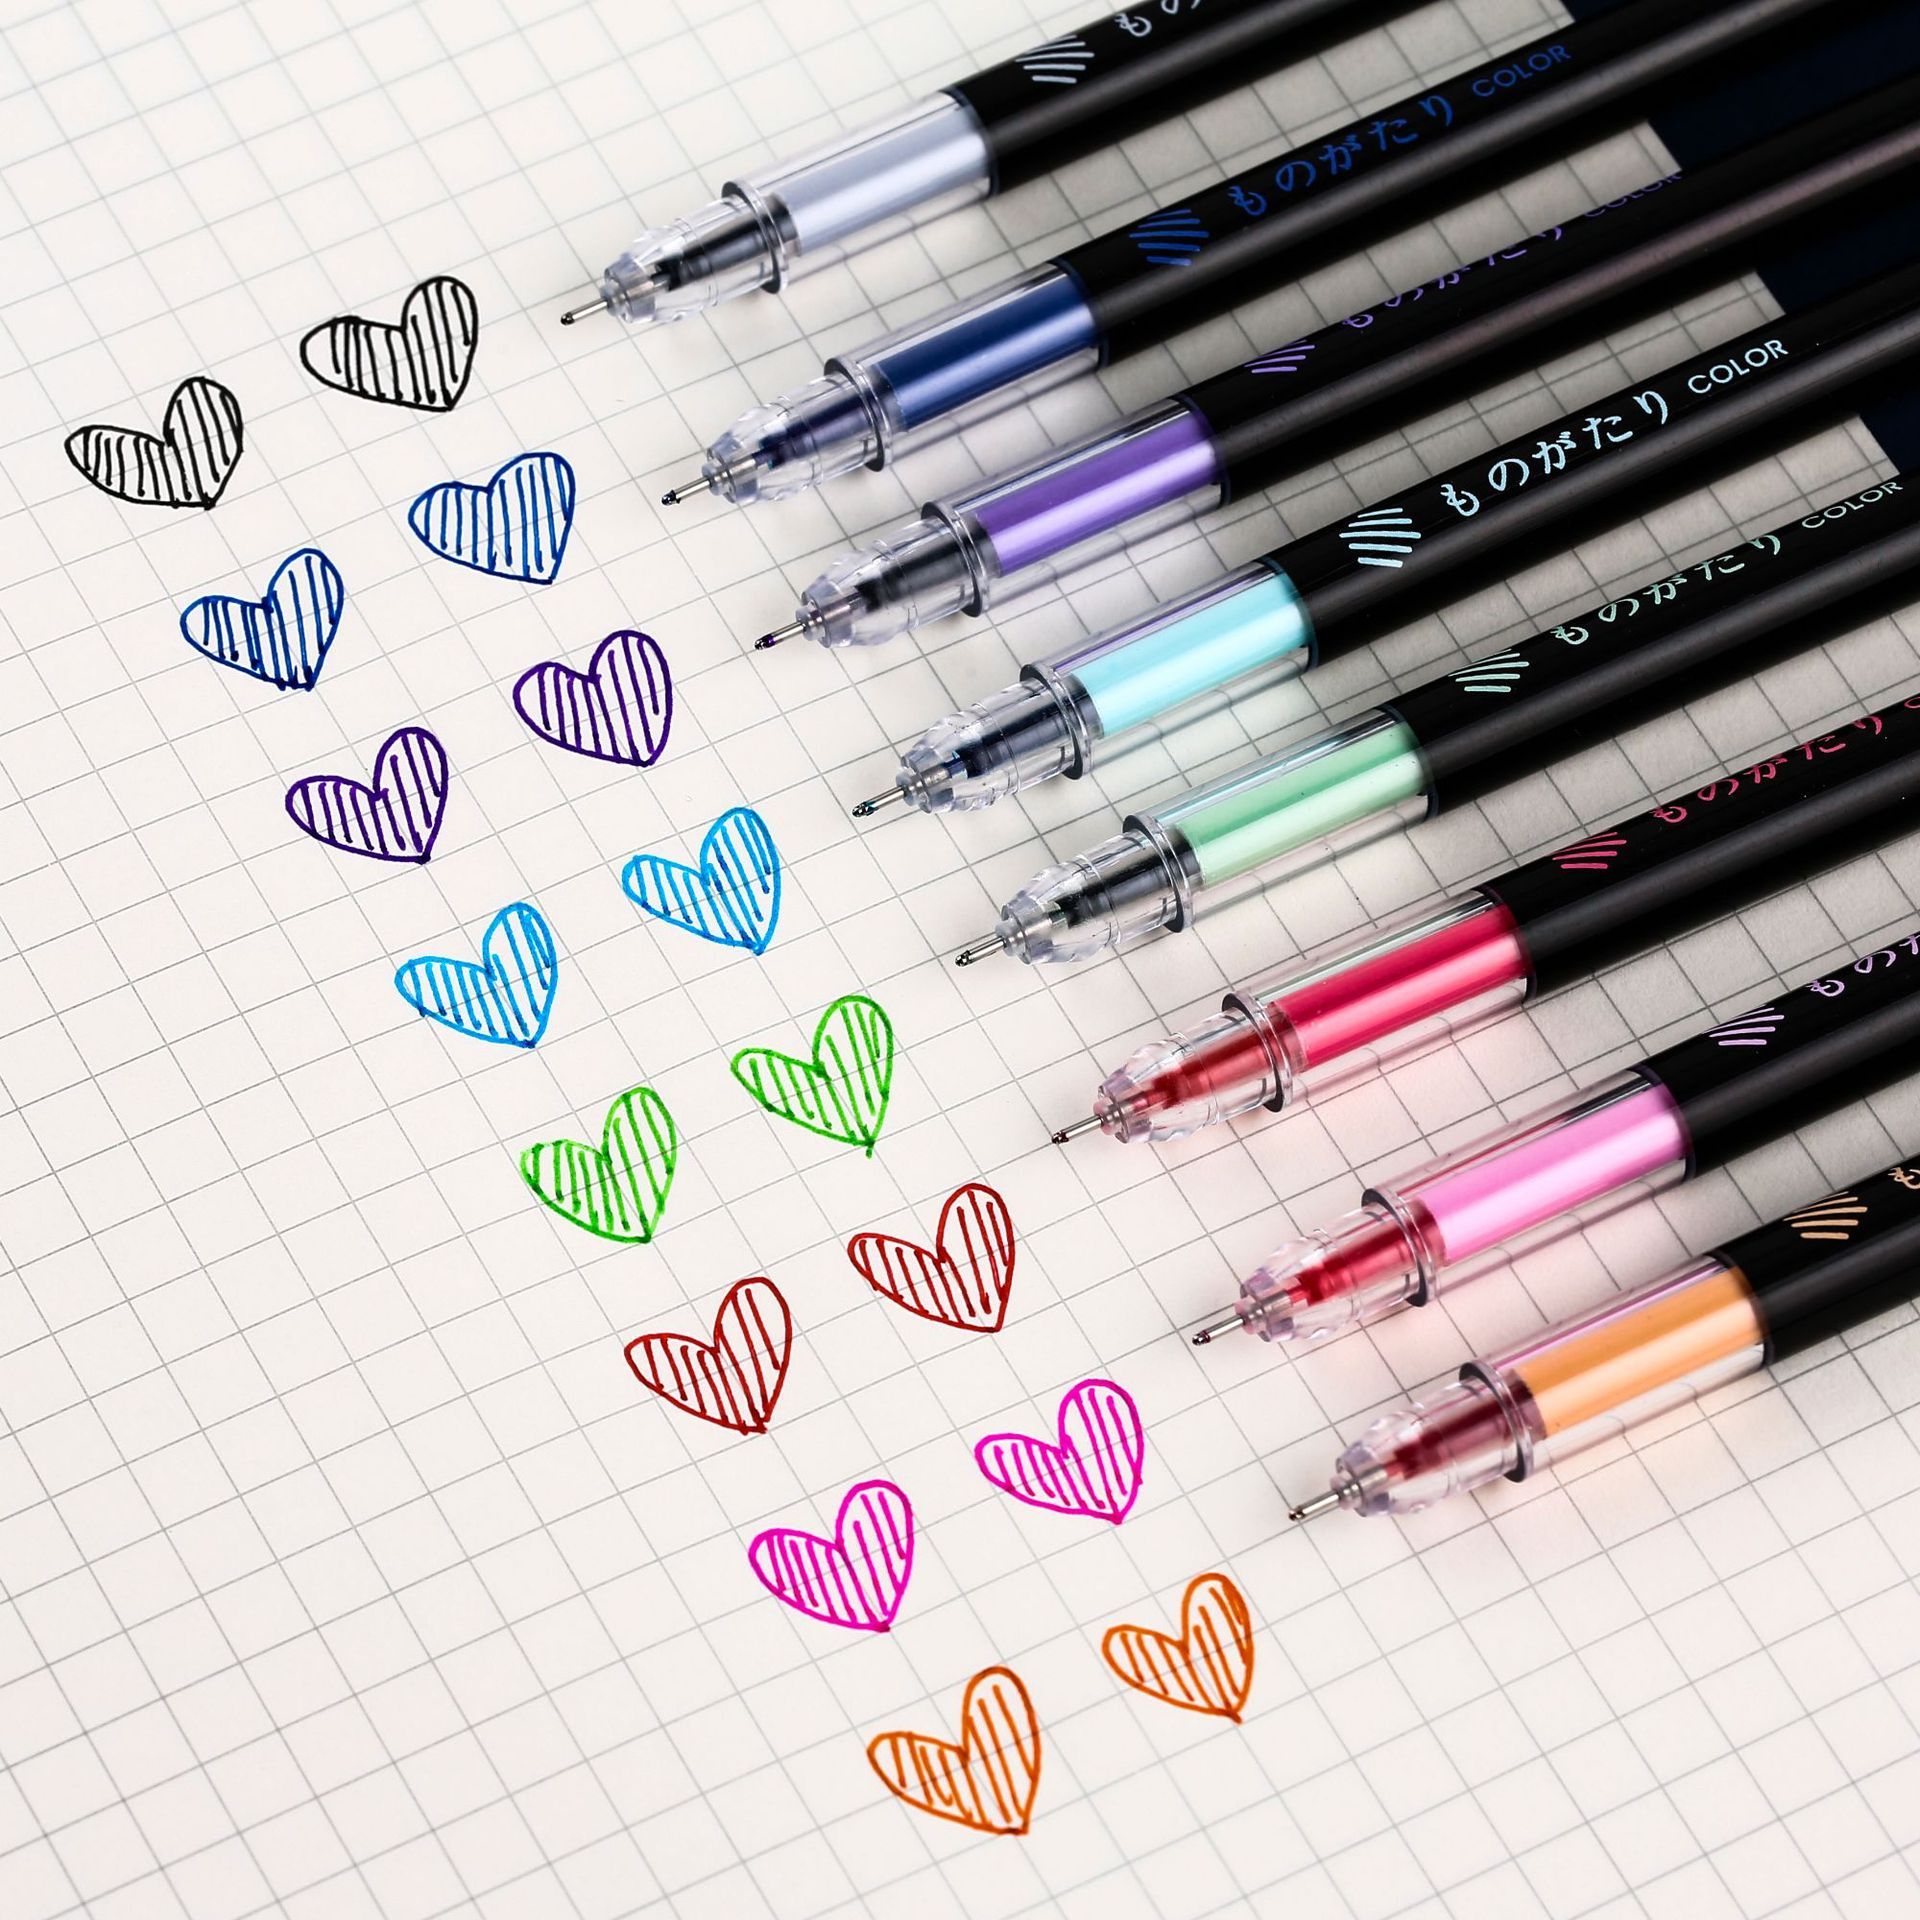 8pcs Creative DIY School Student Stationery 0.5mm Colored Ink Gel Pen Fashion Bullet Journal Fineline Pen Supplies